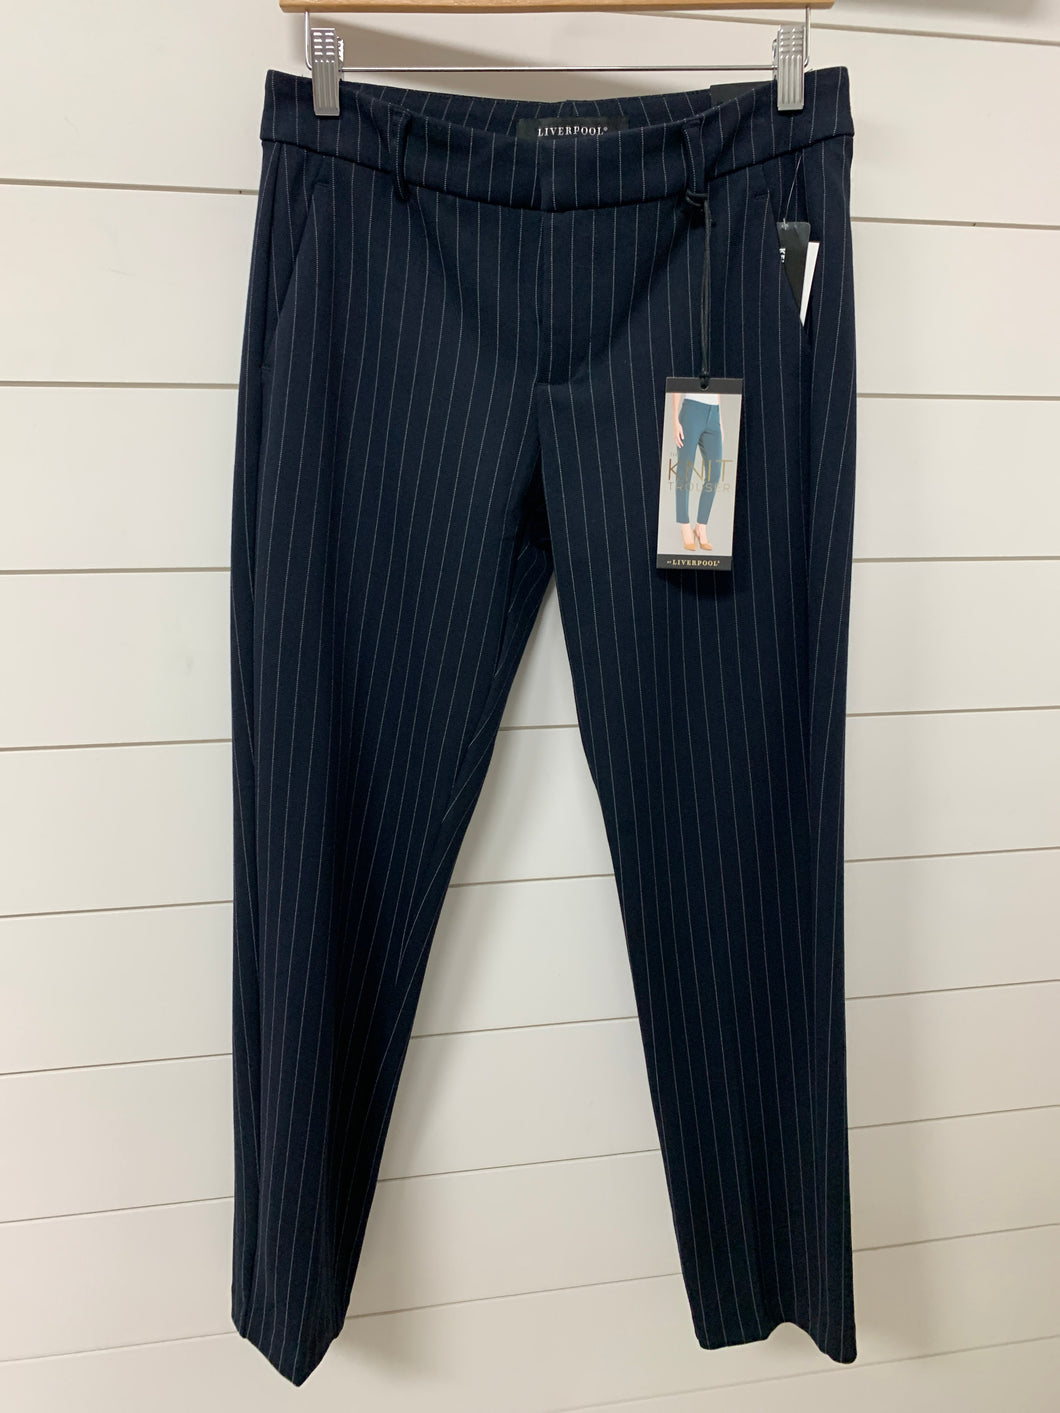 Liverpool Kelsey Knit Trouser 29' Inseam (navy)